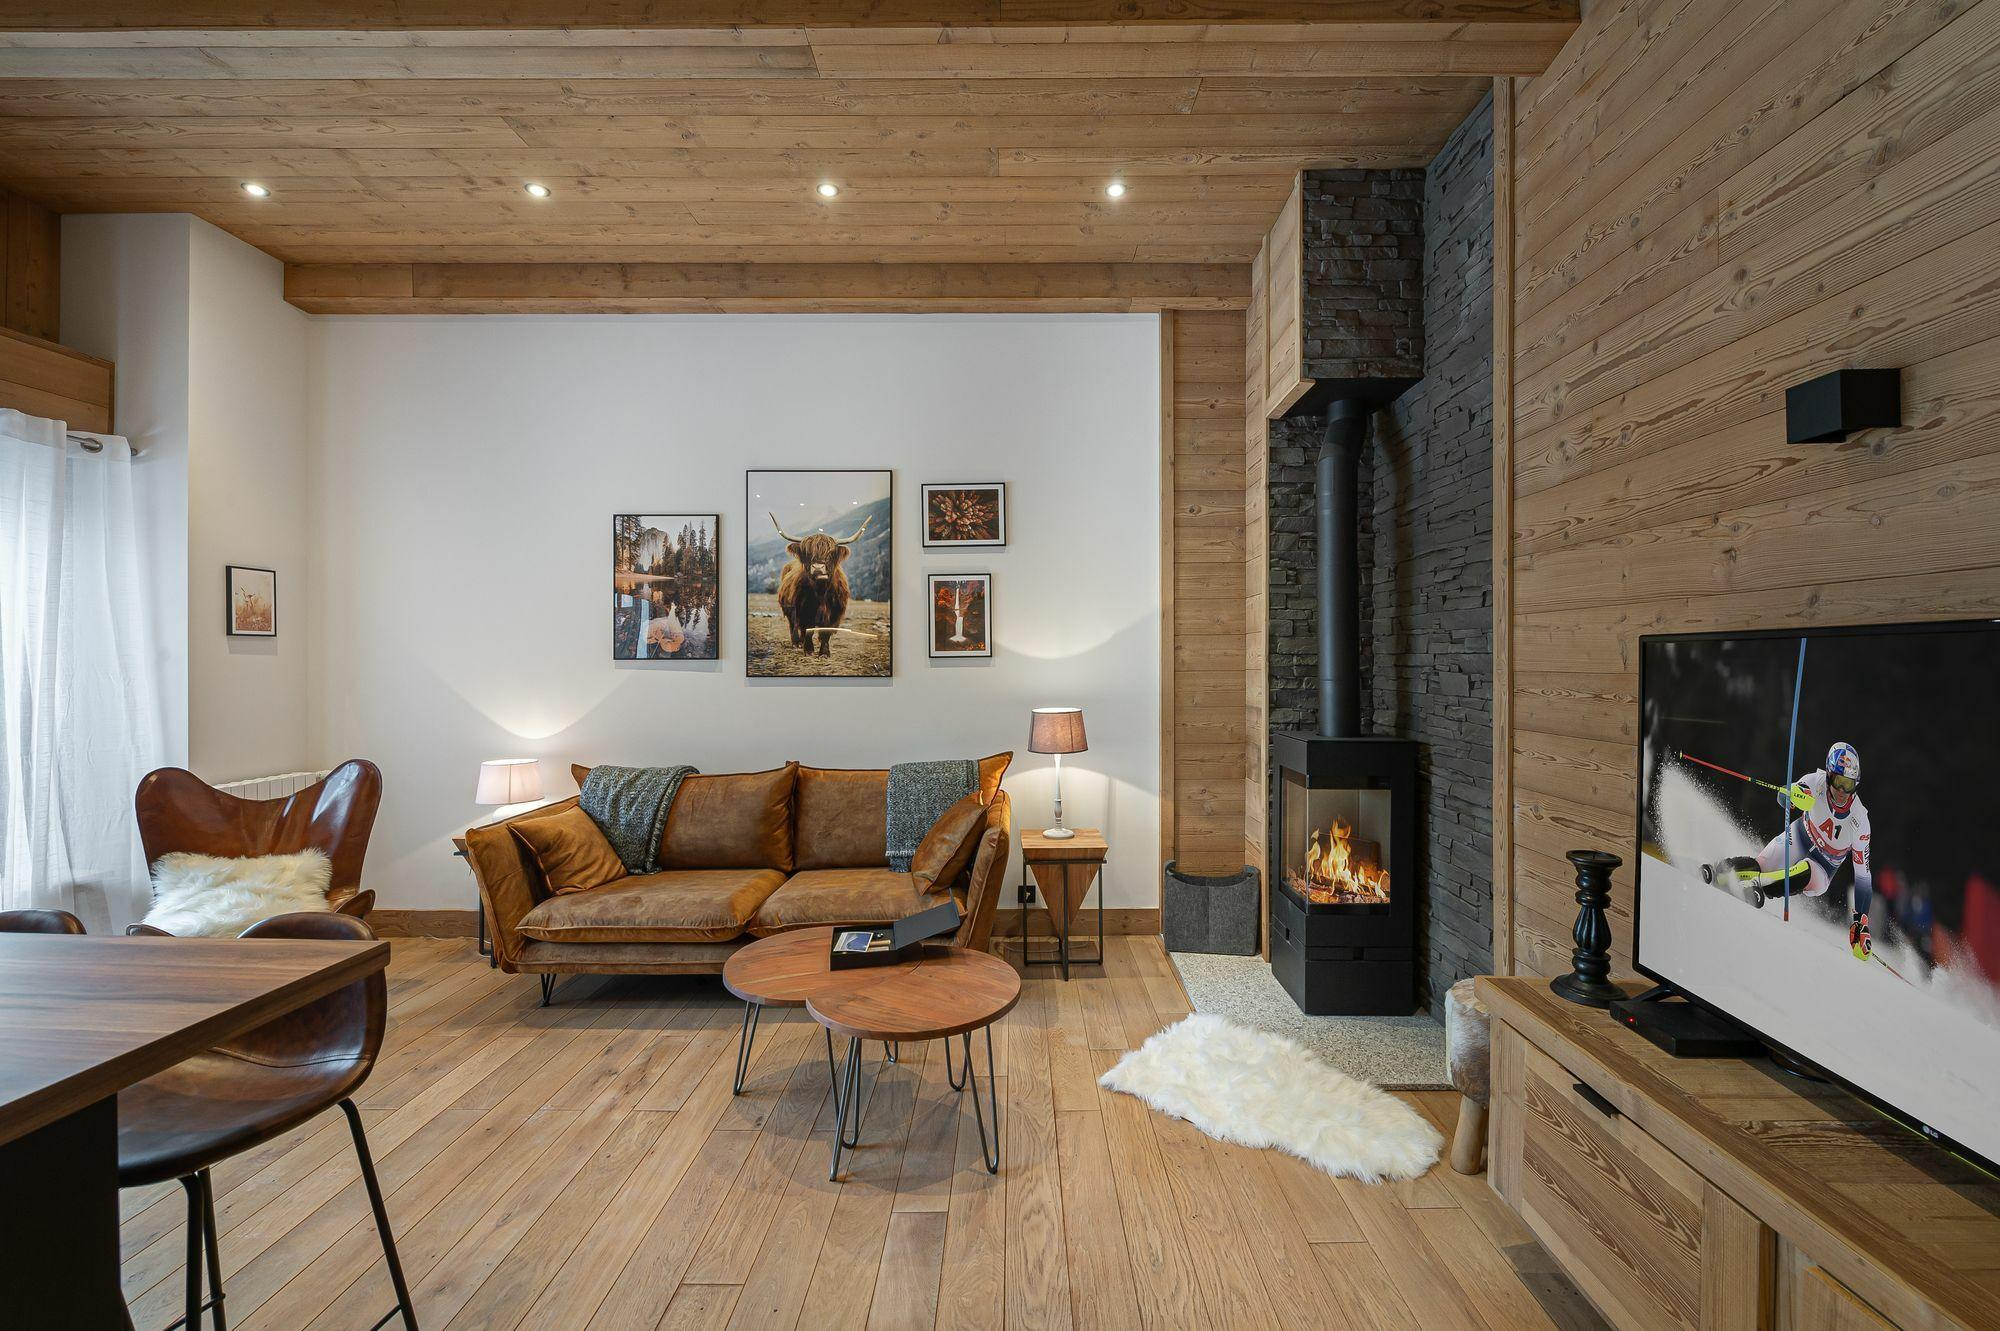 Saint Georges 2 Accommodation in Megeve